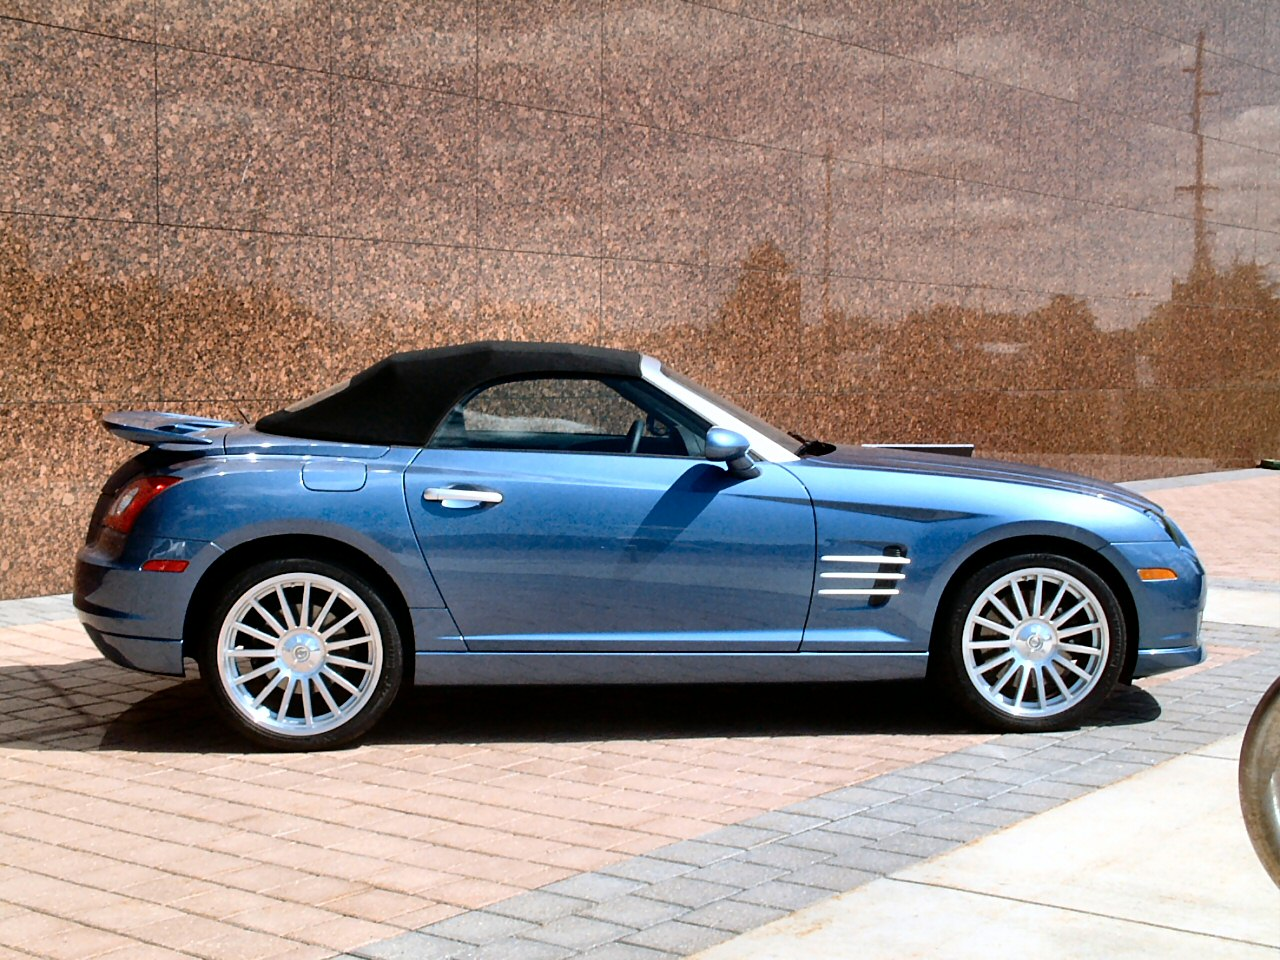 Chrysler crossfire srt6 roadster photos picture 3